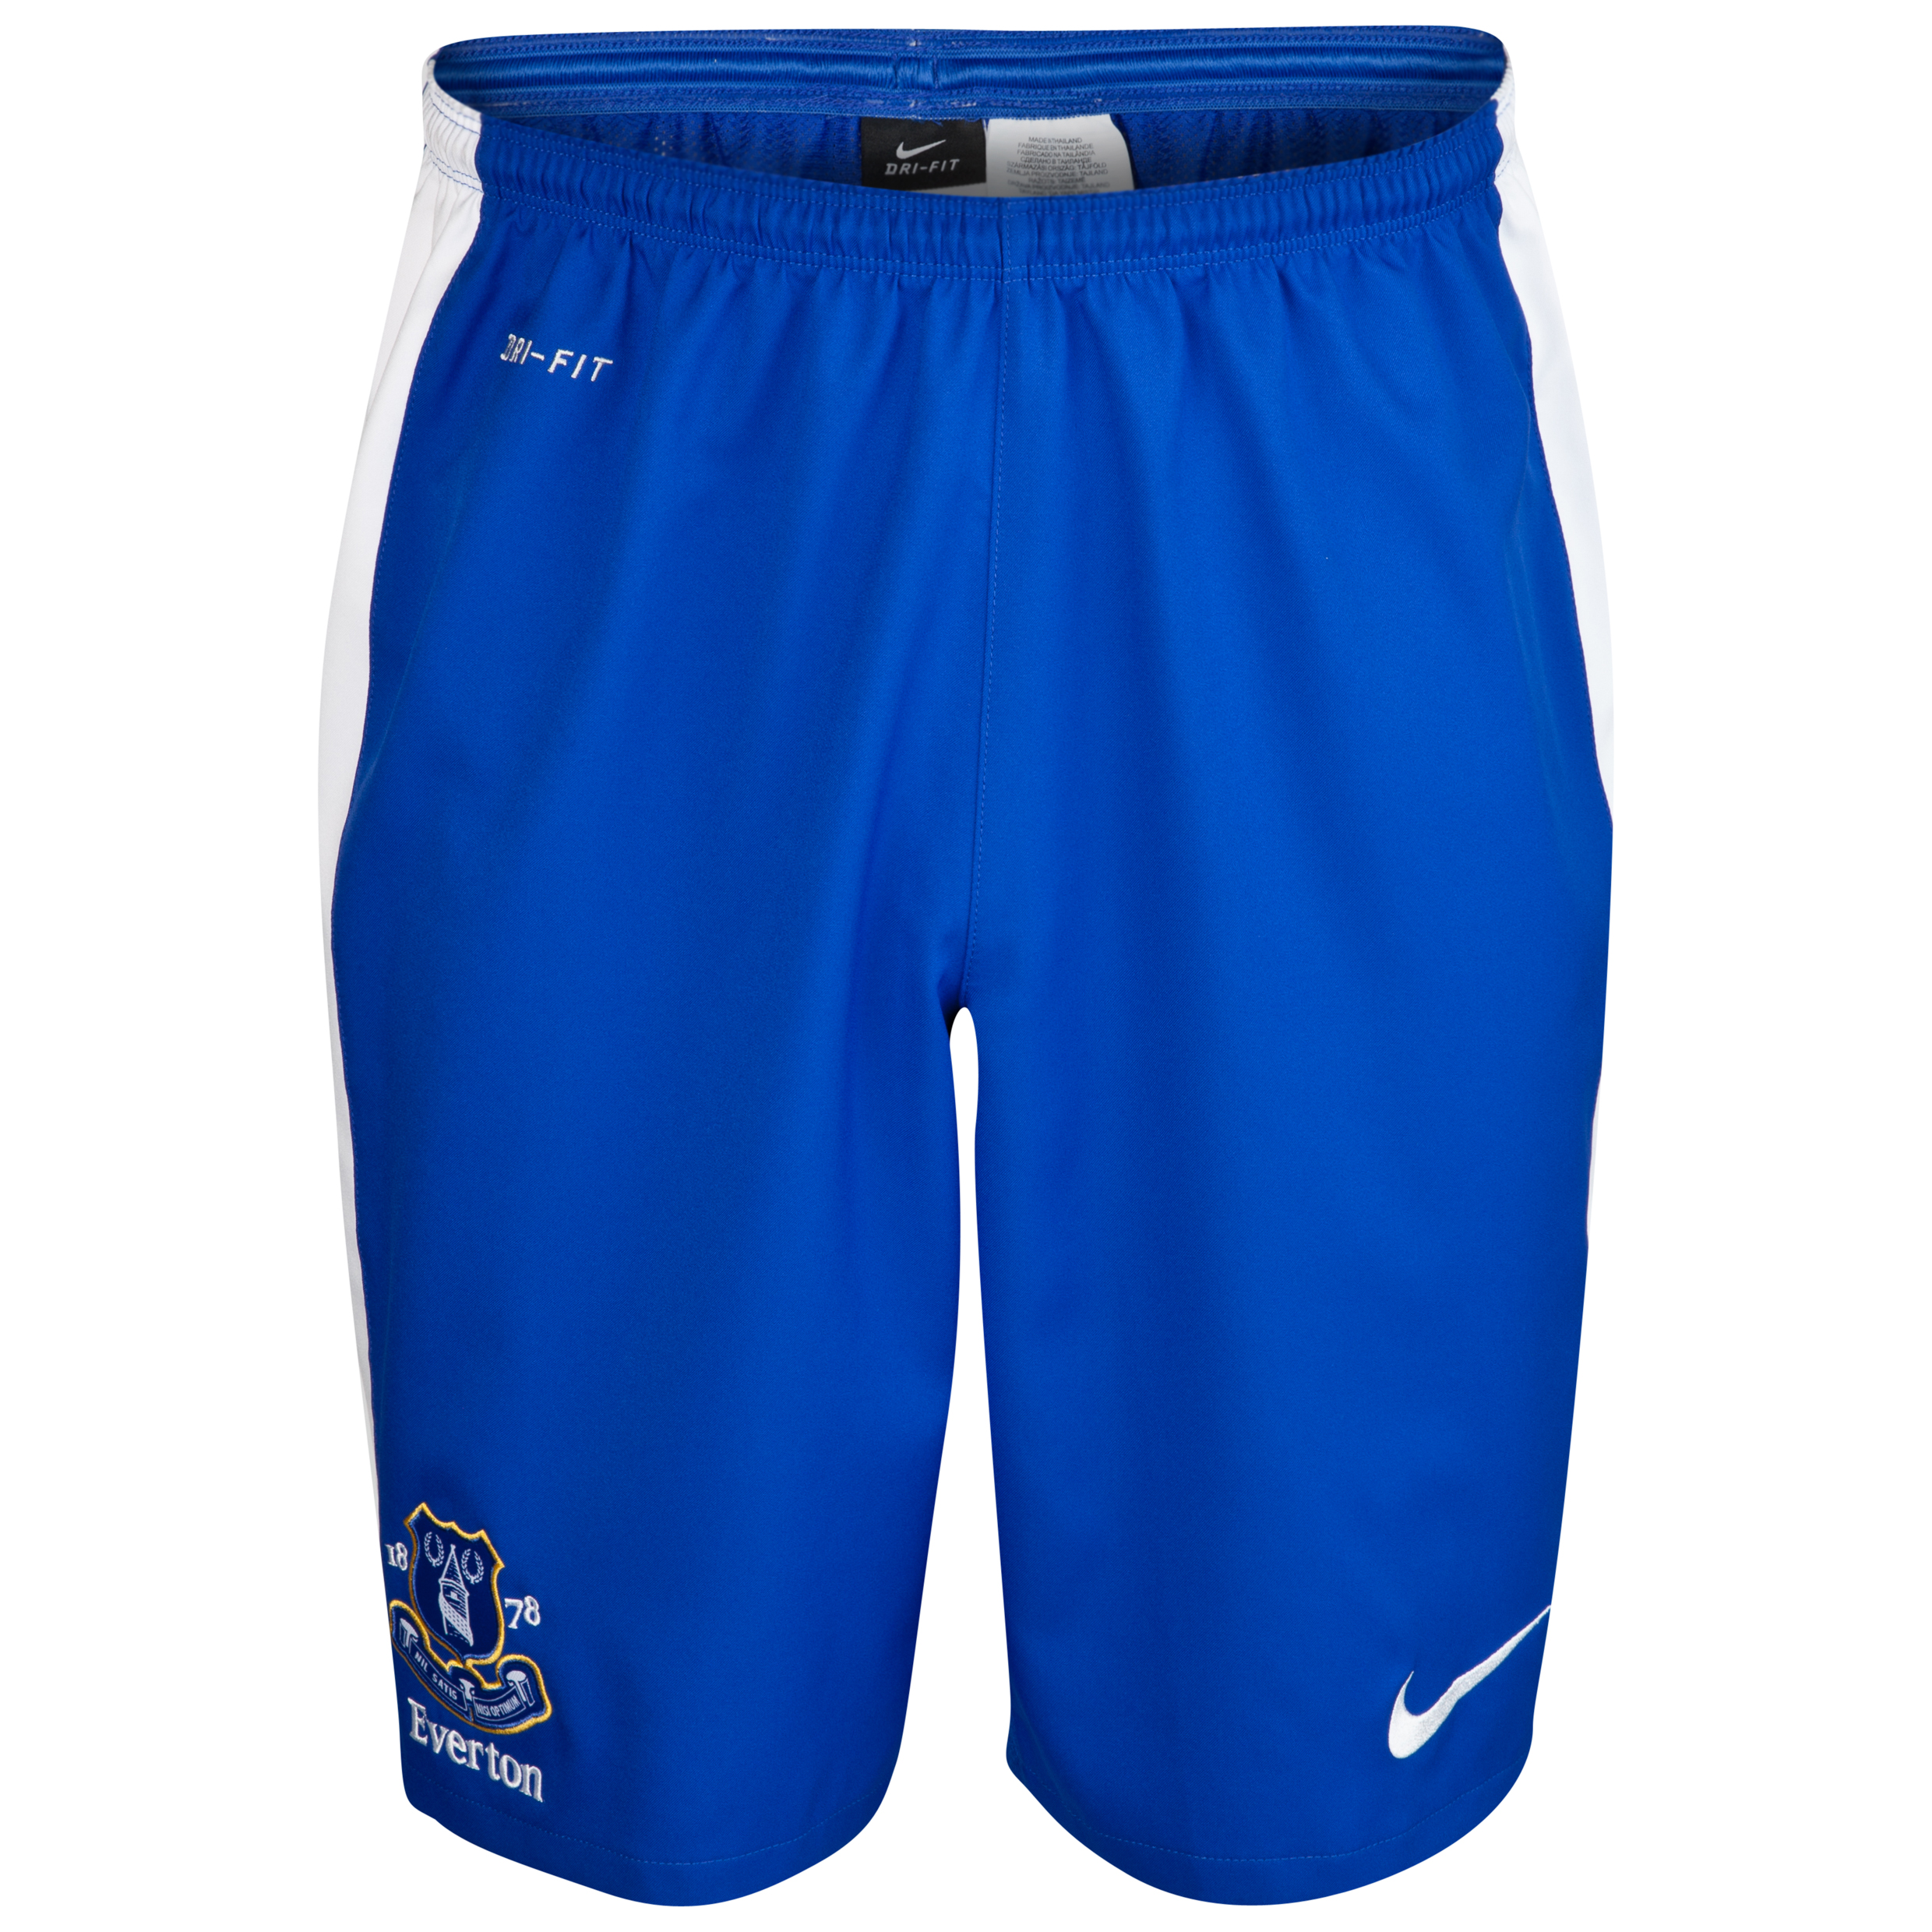 Everton Home Change/3rd Short 2012/13- Junior